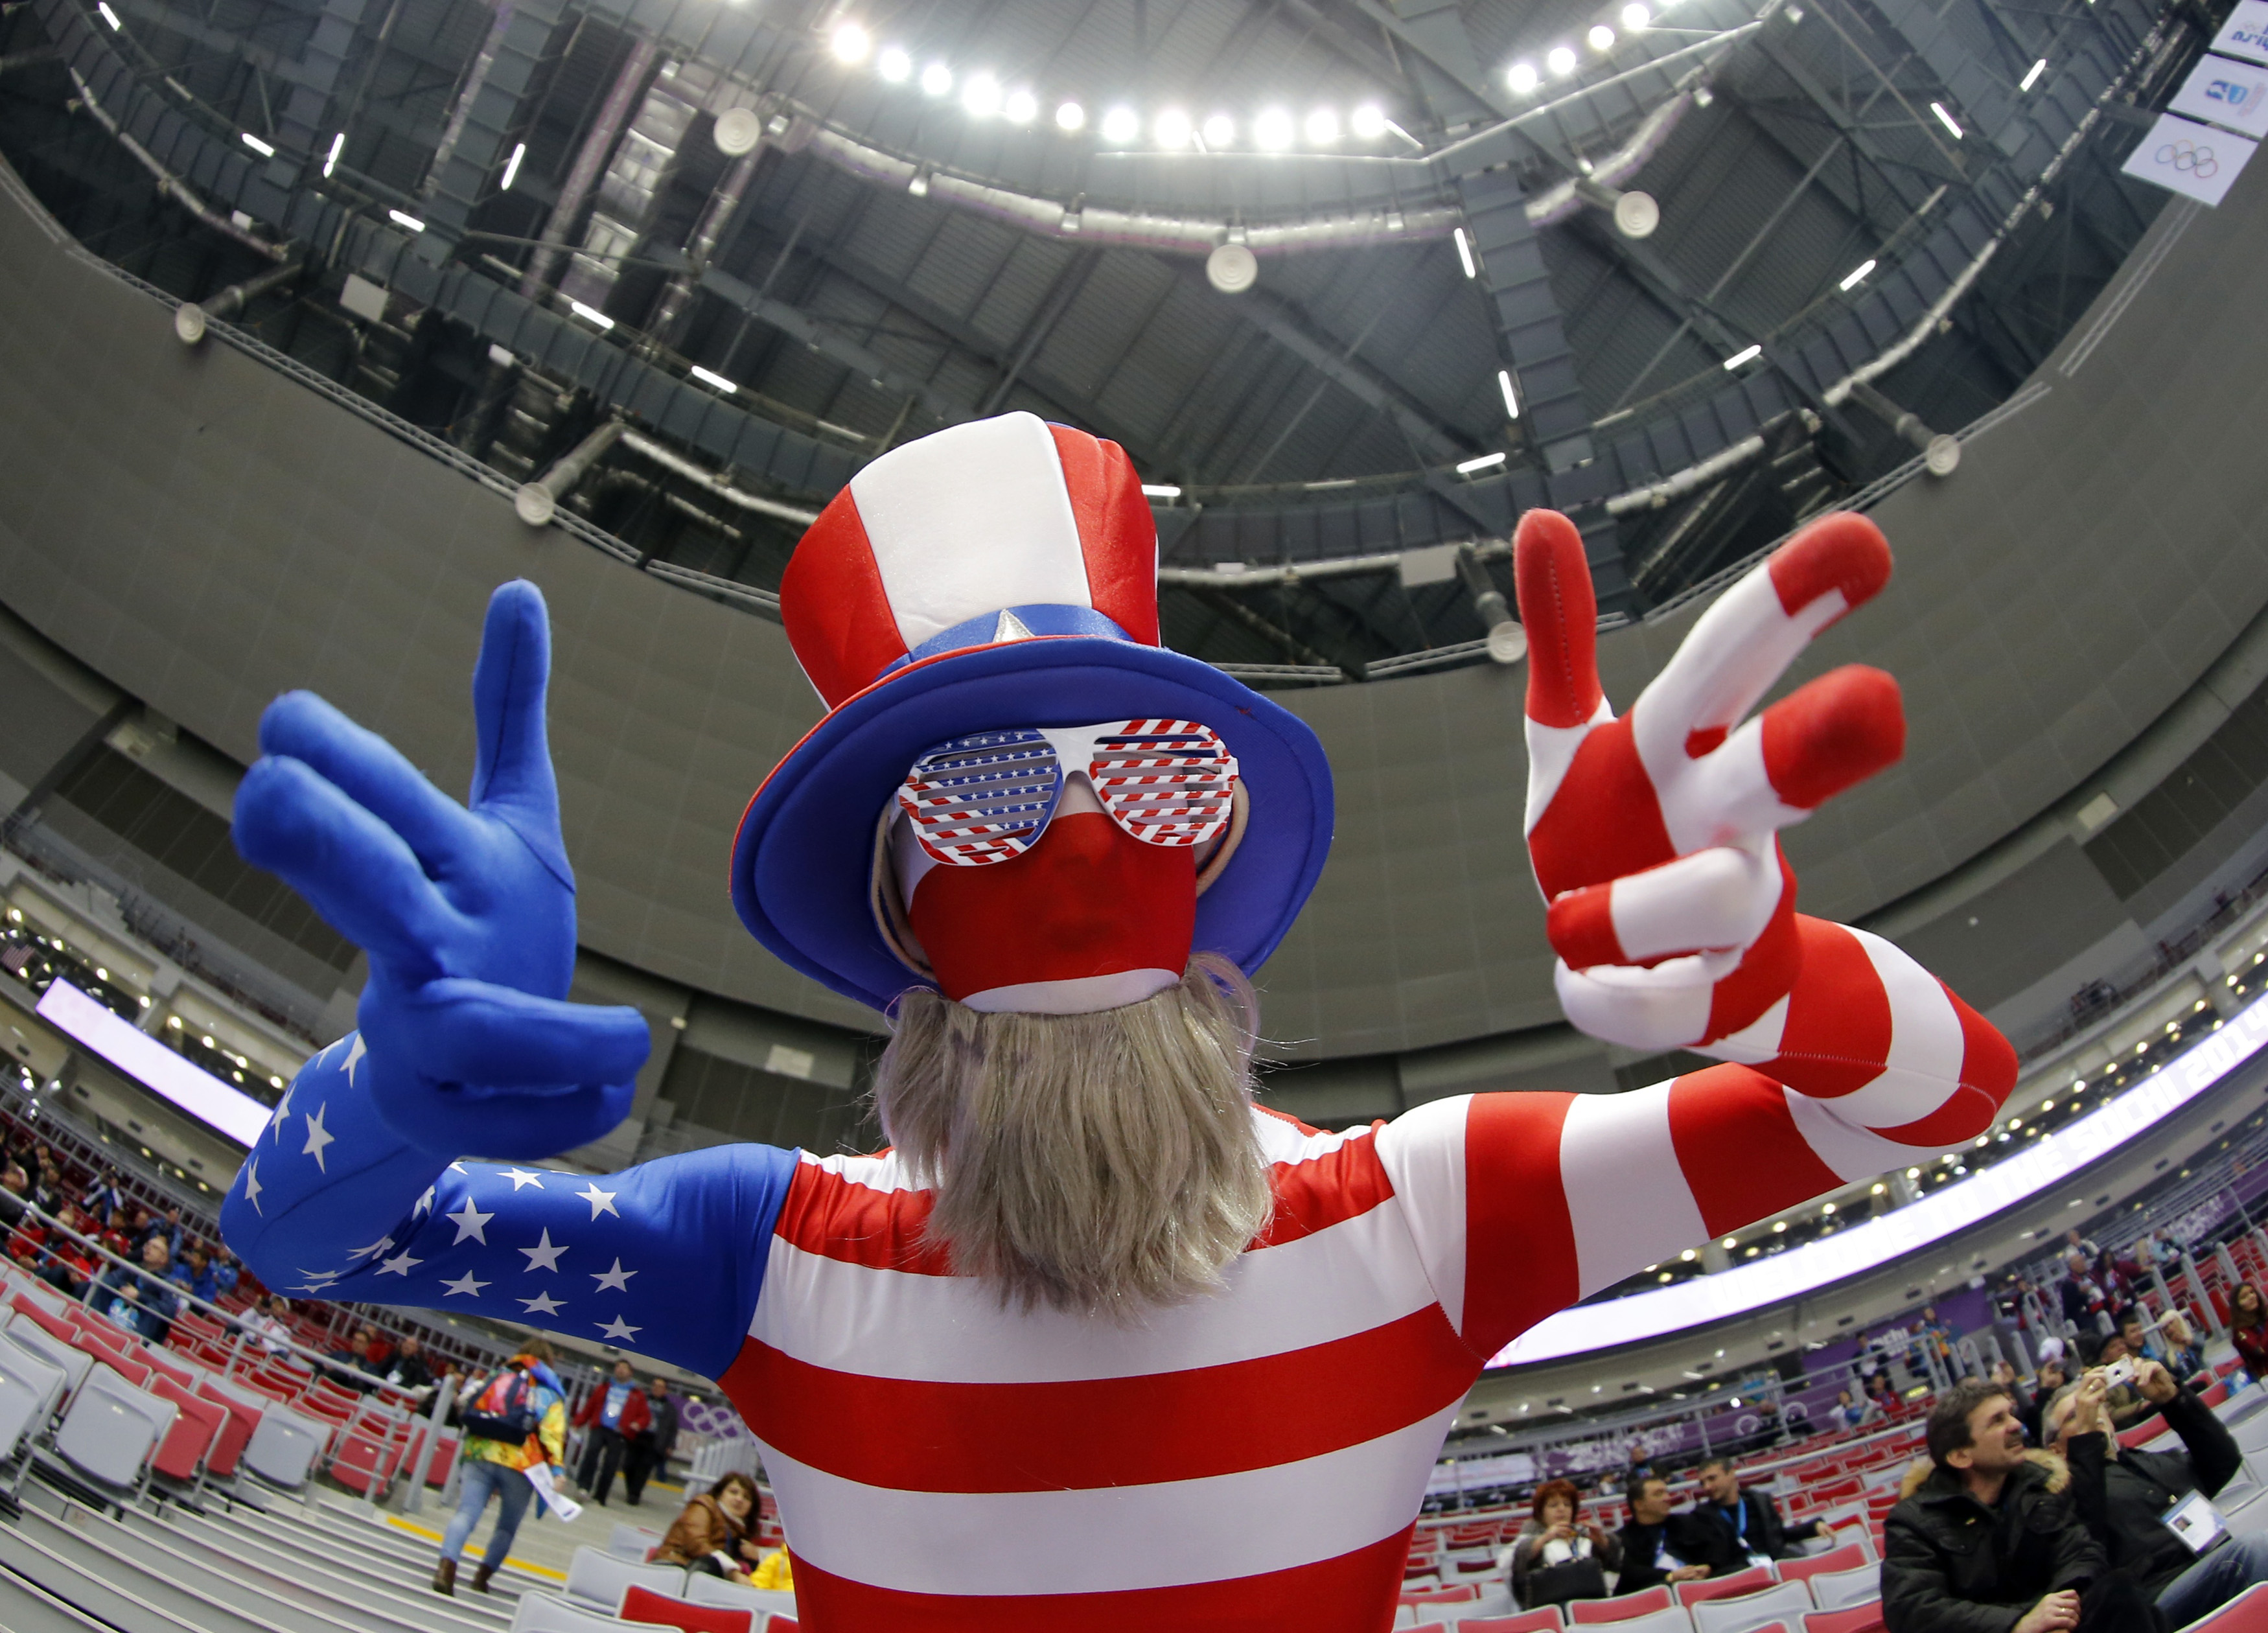 A fan of the U.S. dressed in a costume in the colours of their national flag gestures ahead of their women's ice hockey gold medal game against Canada at the Sochi 2014 Winter Olympic Games February 20, 2014.